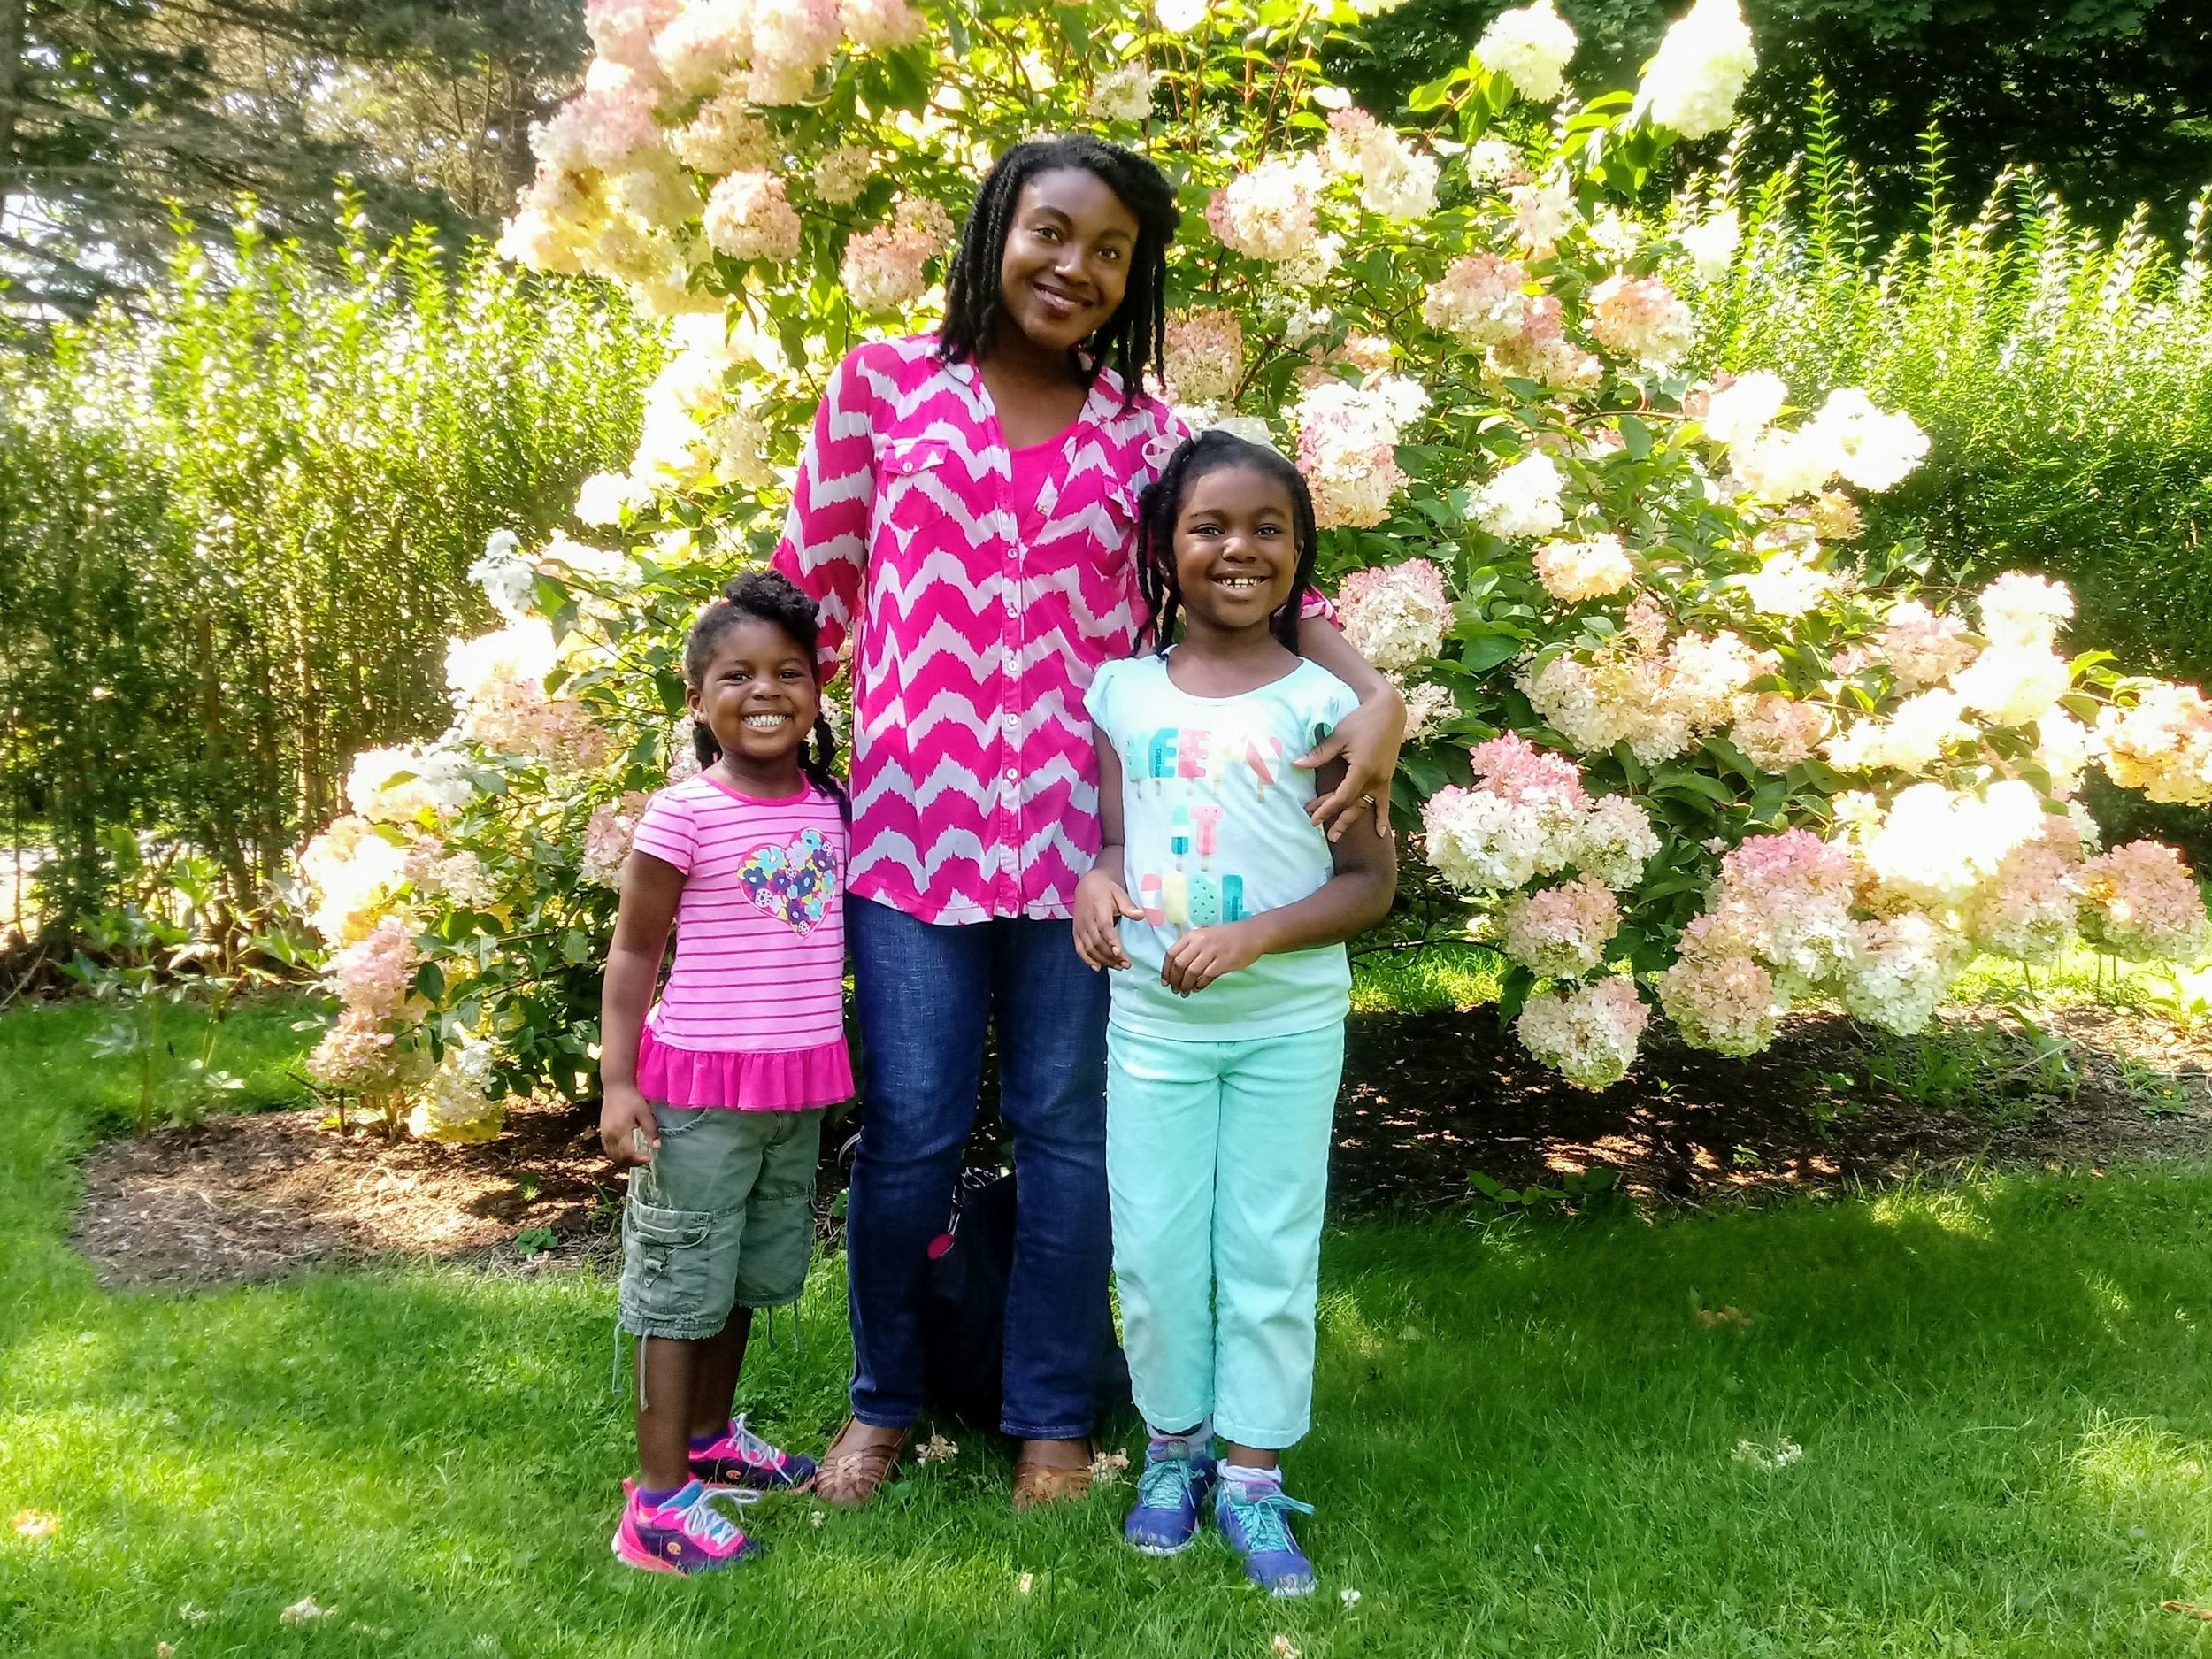 Motherhood & Sanctity - Every mom is a theologian. Moms in Christ are called to be good ones.